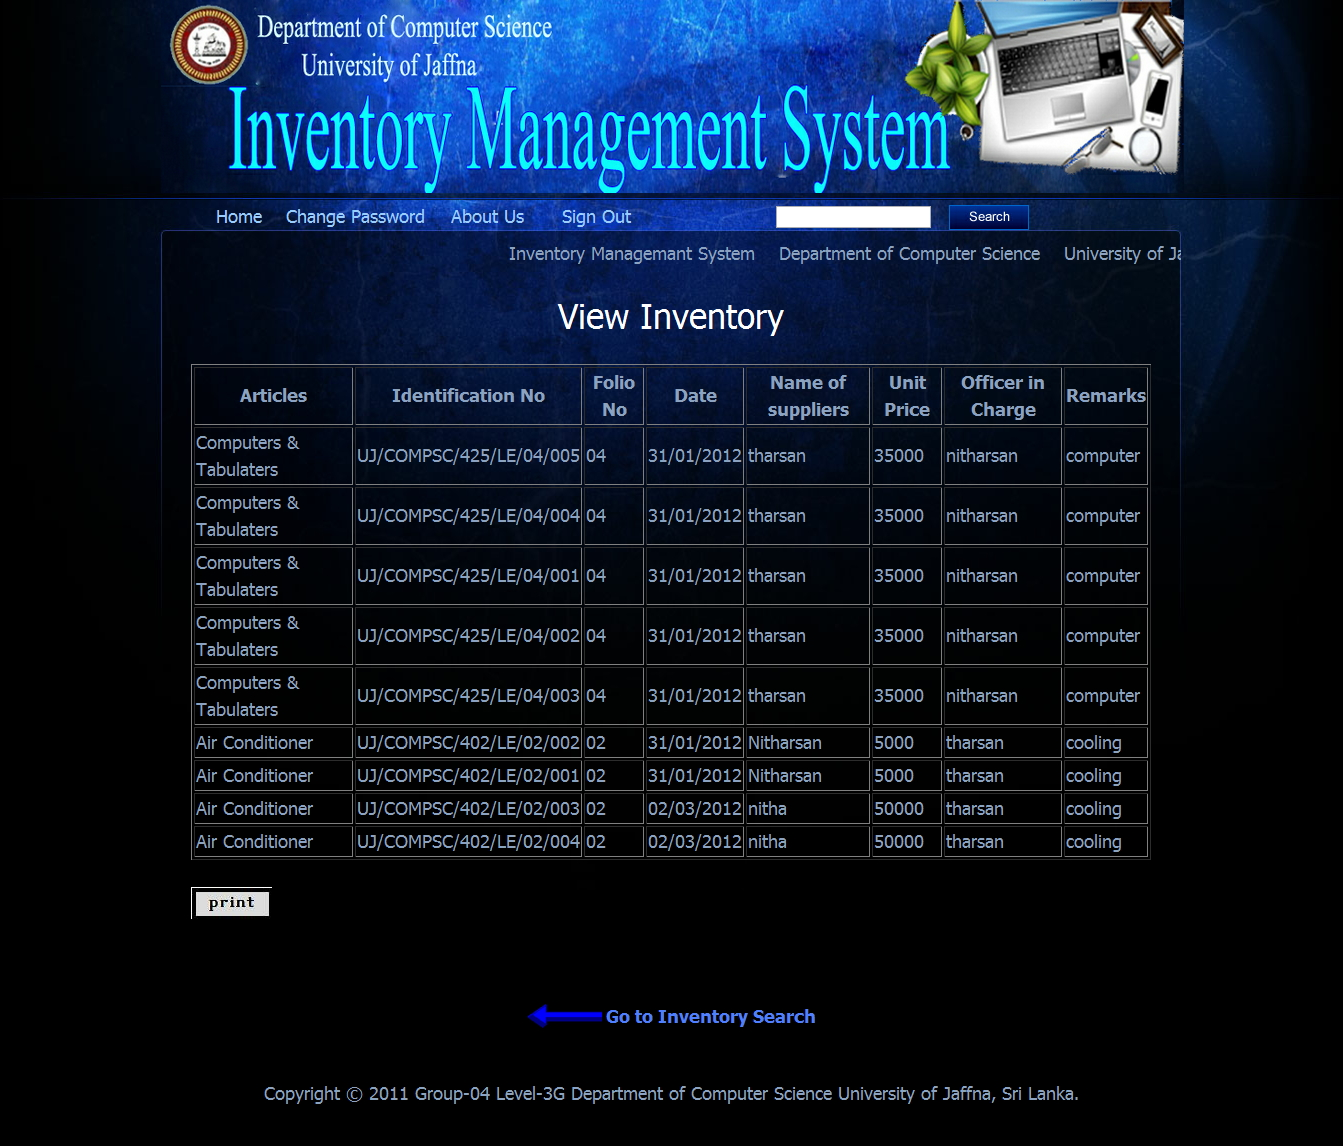 inventory management system ims Inventory management systems are designed to monitor product availability, determine purchasing schedules and cycle out obsolete or unsold product the availability of product is just one way in which an inventory management system attempts to create customer satisfaction.